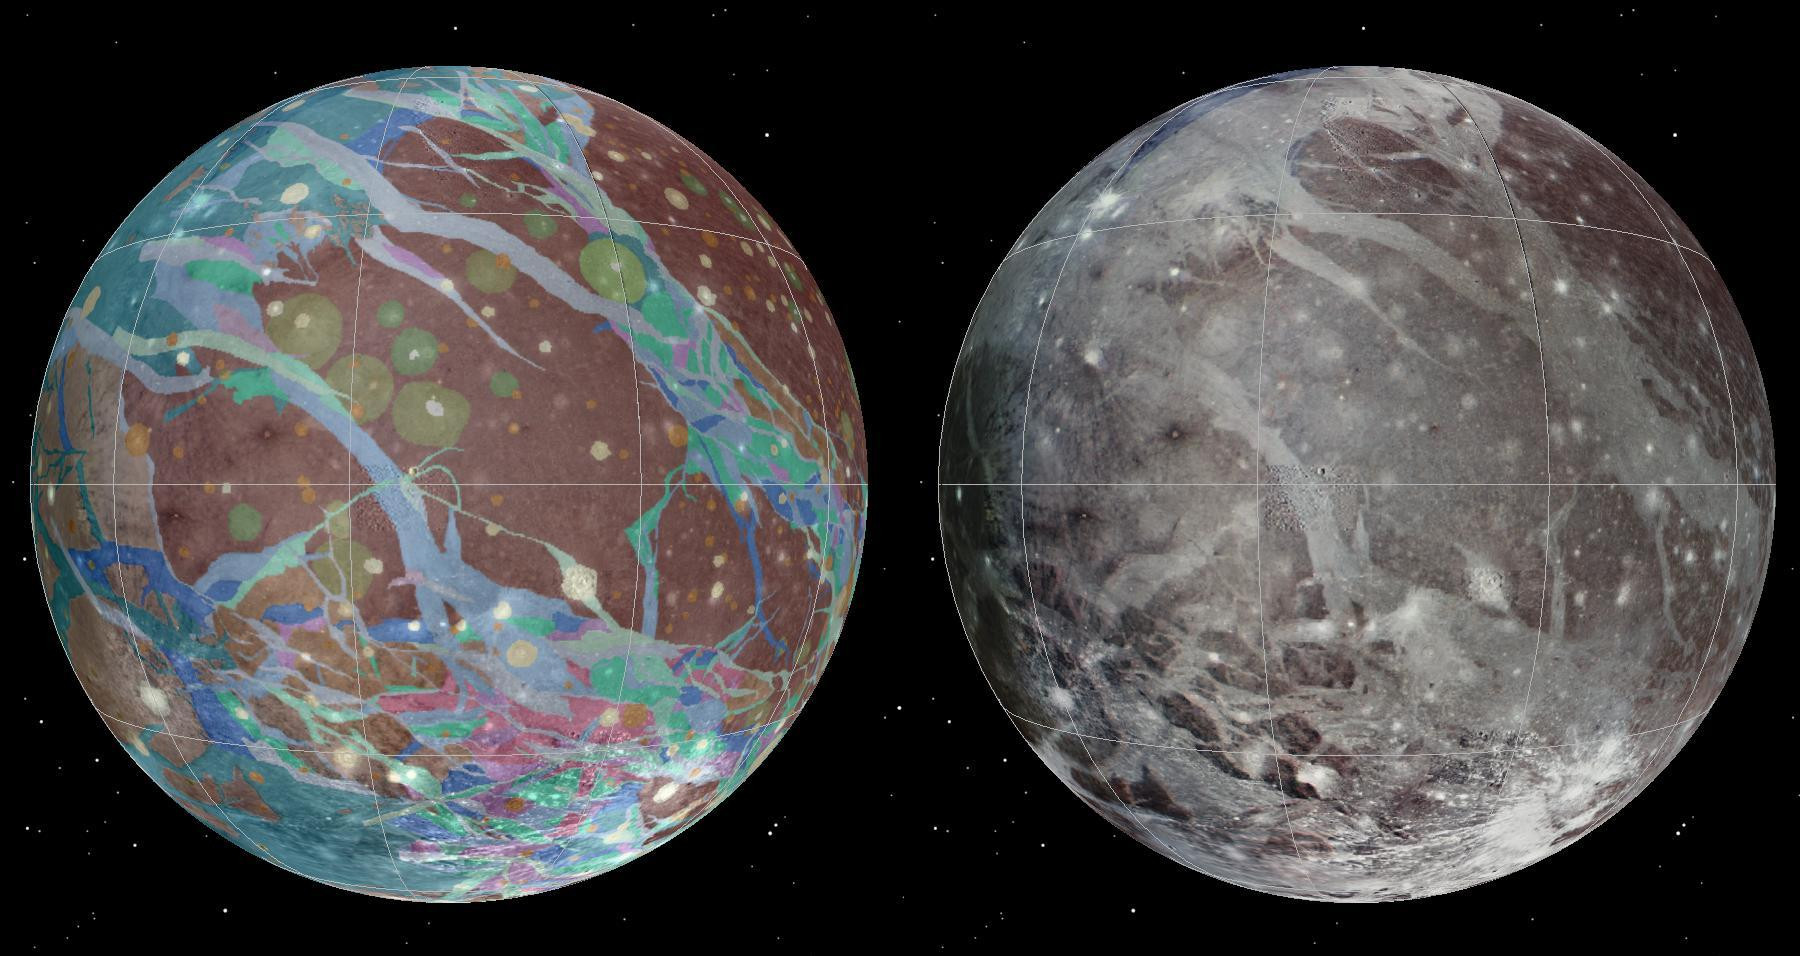 'It's going to be a wild ride': NASA spacecraft Juno to fly by Jupiter's moon Ganymede today